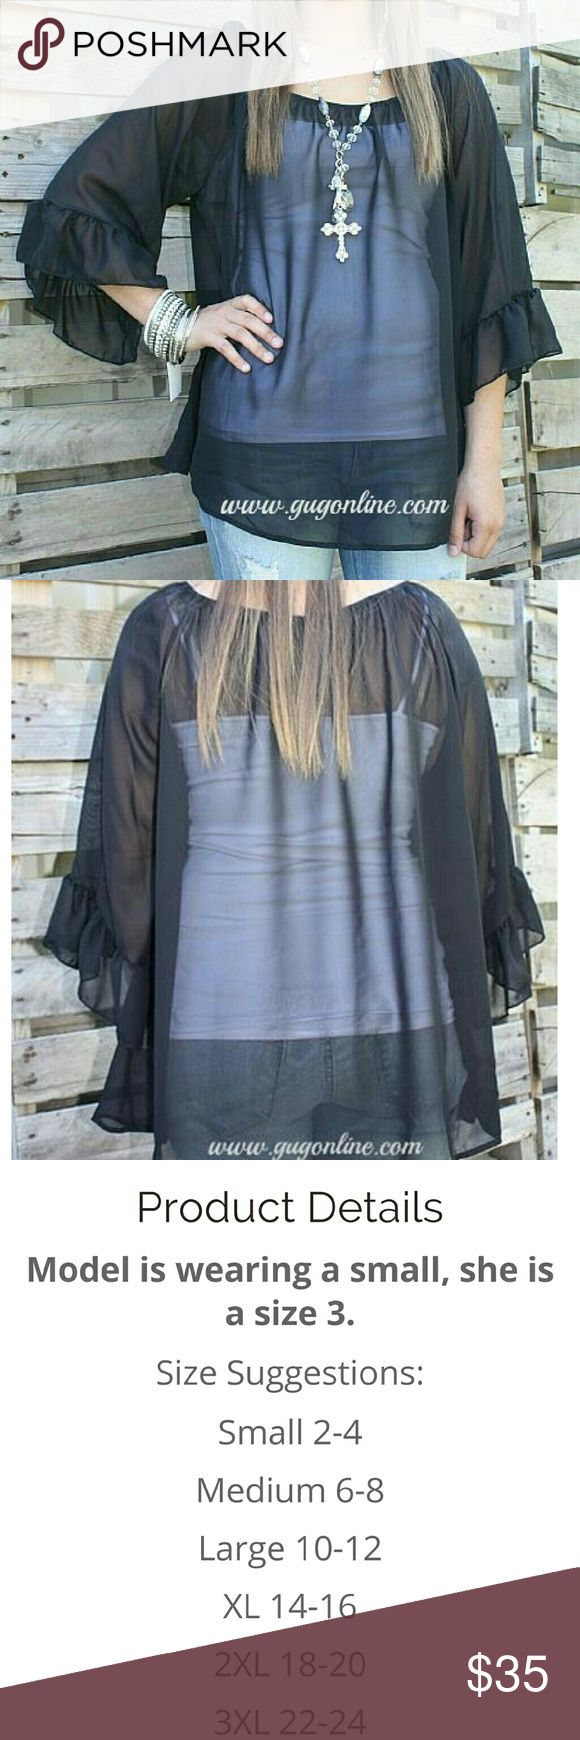 Giddy up glamour feeling the breeze top Feeling the breeze giddy up glamour sheer black top worn once size 3x (22/24) giddy up glamour  Tops Blouses